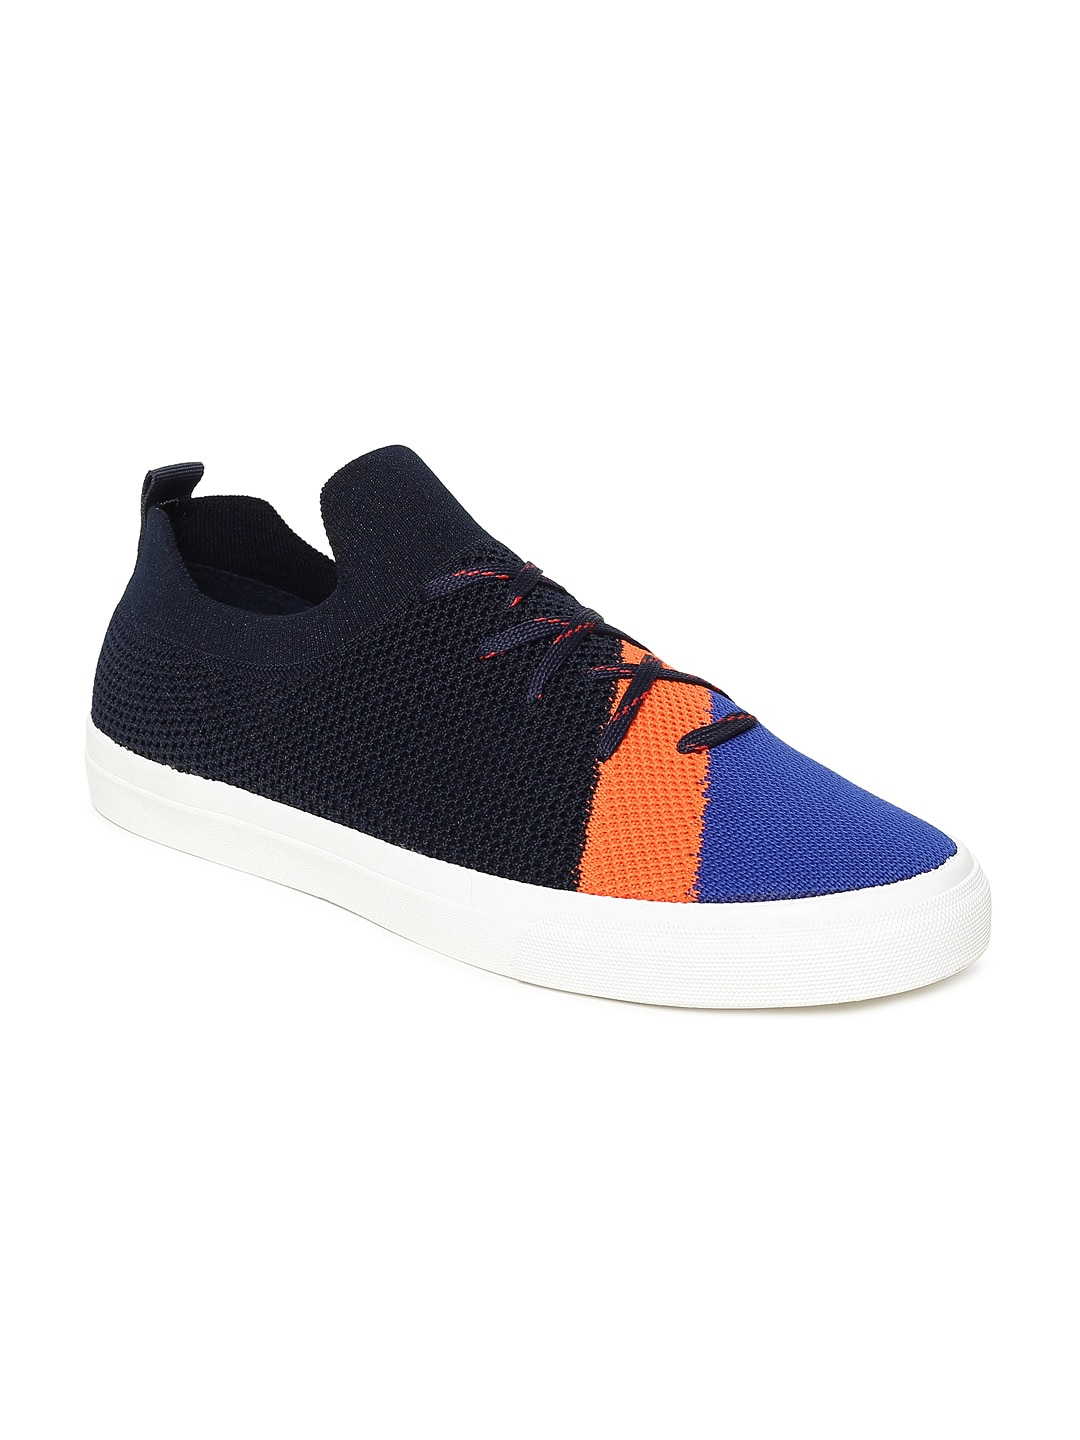 9eaa1ed485d6 United Colors of Benetton Shoes - Buy UCB Sneakers Online